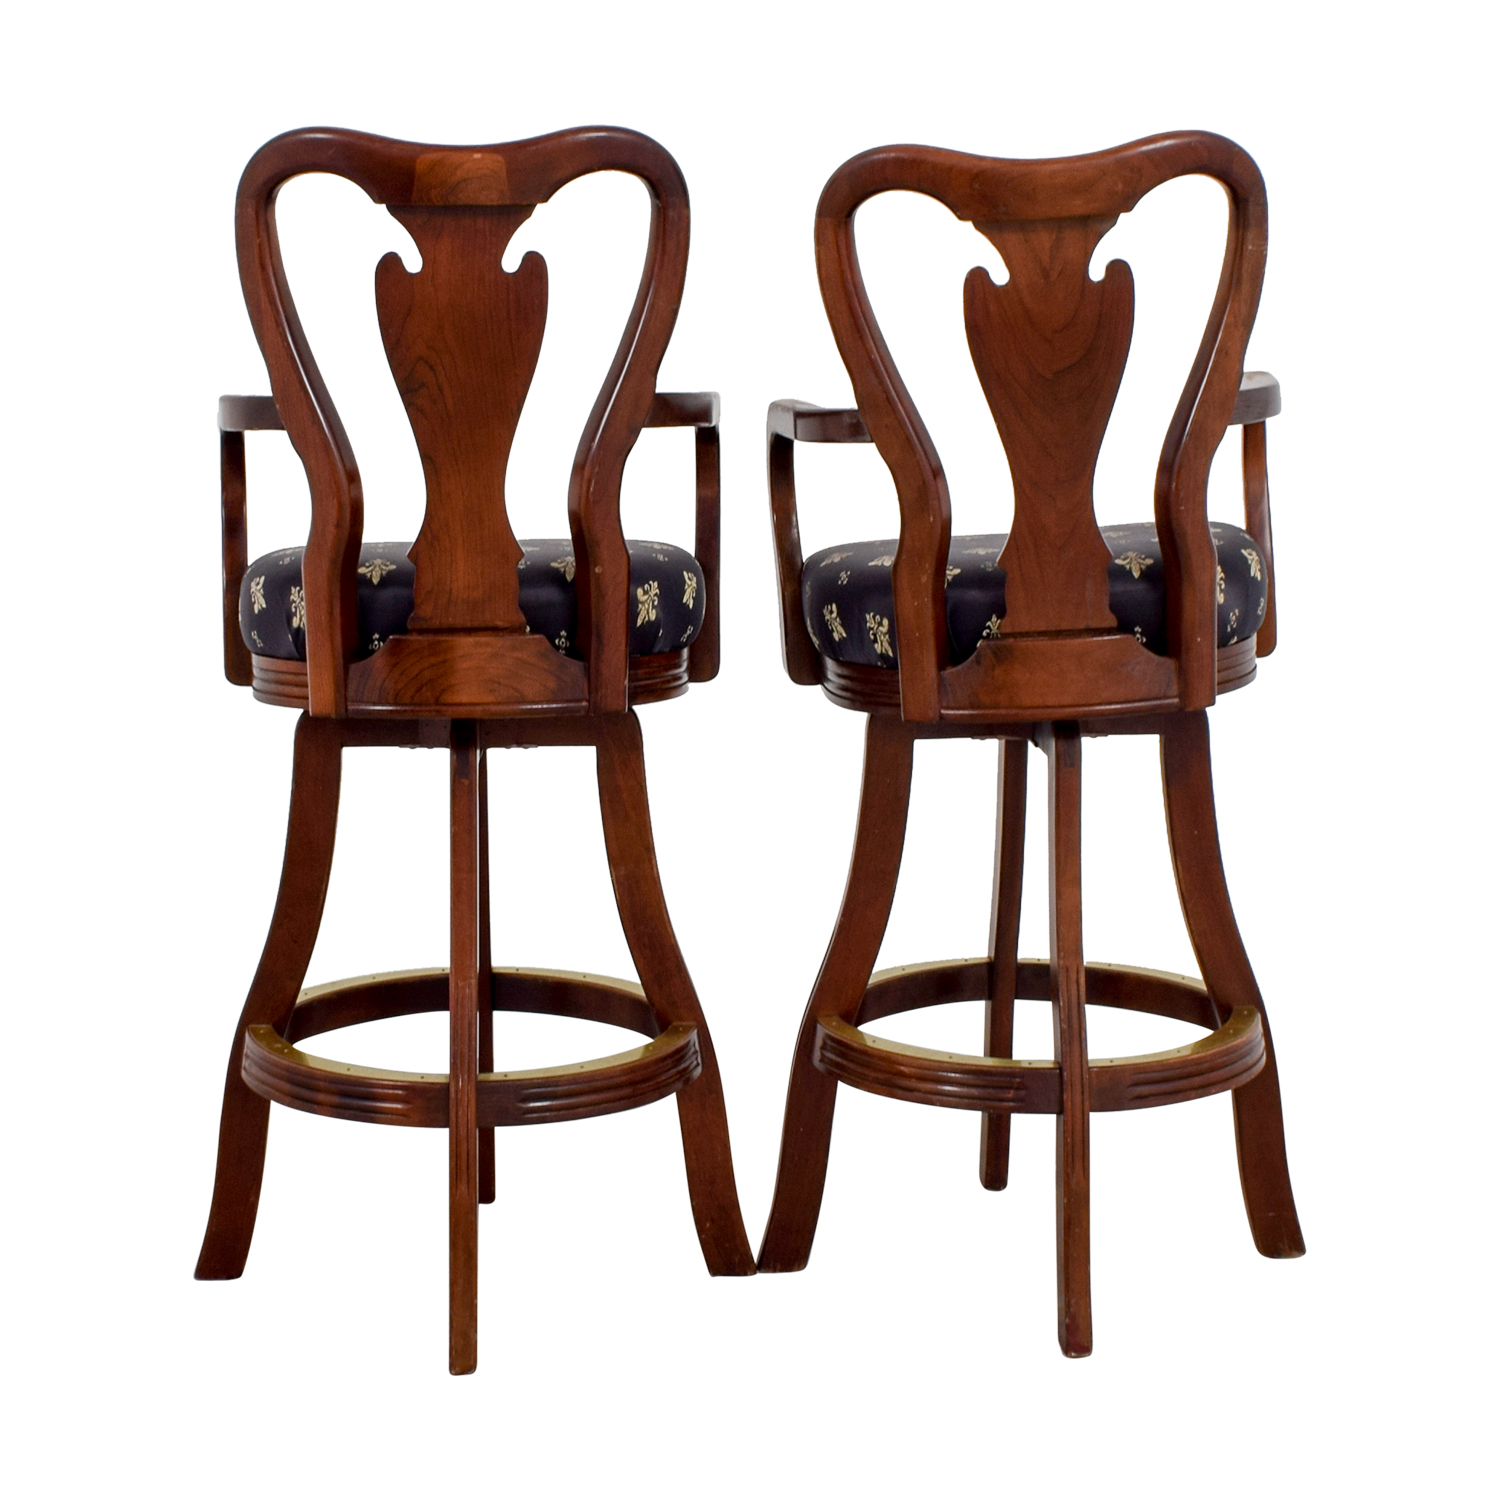 ... Black Fleur De Lis Upholstered Wood Bar Stools / Chairs ...